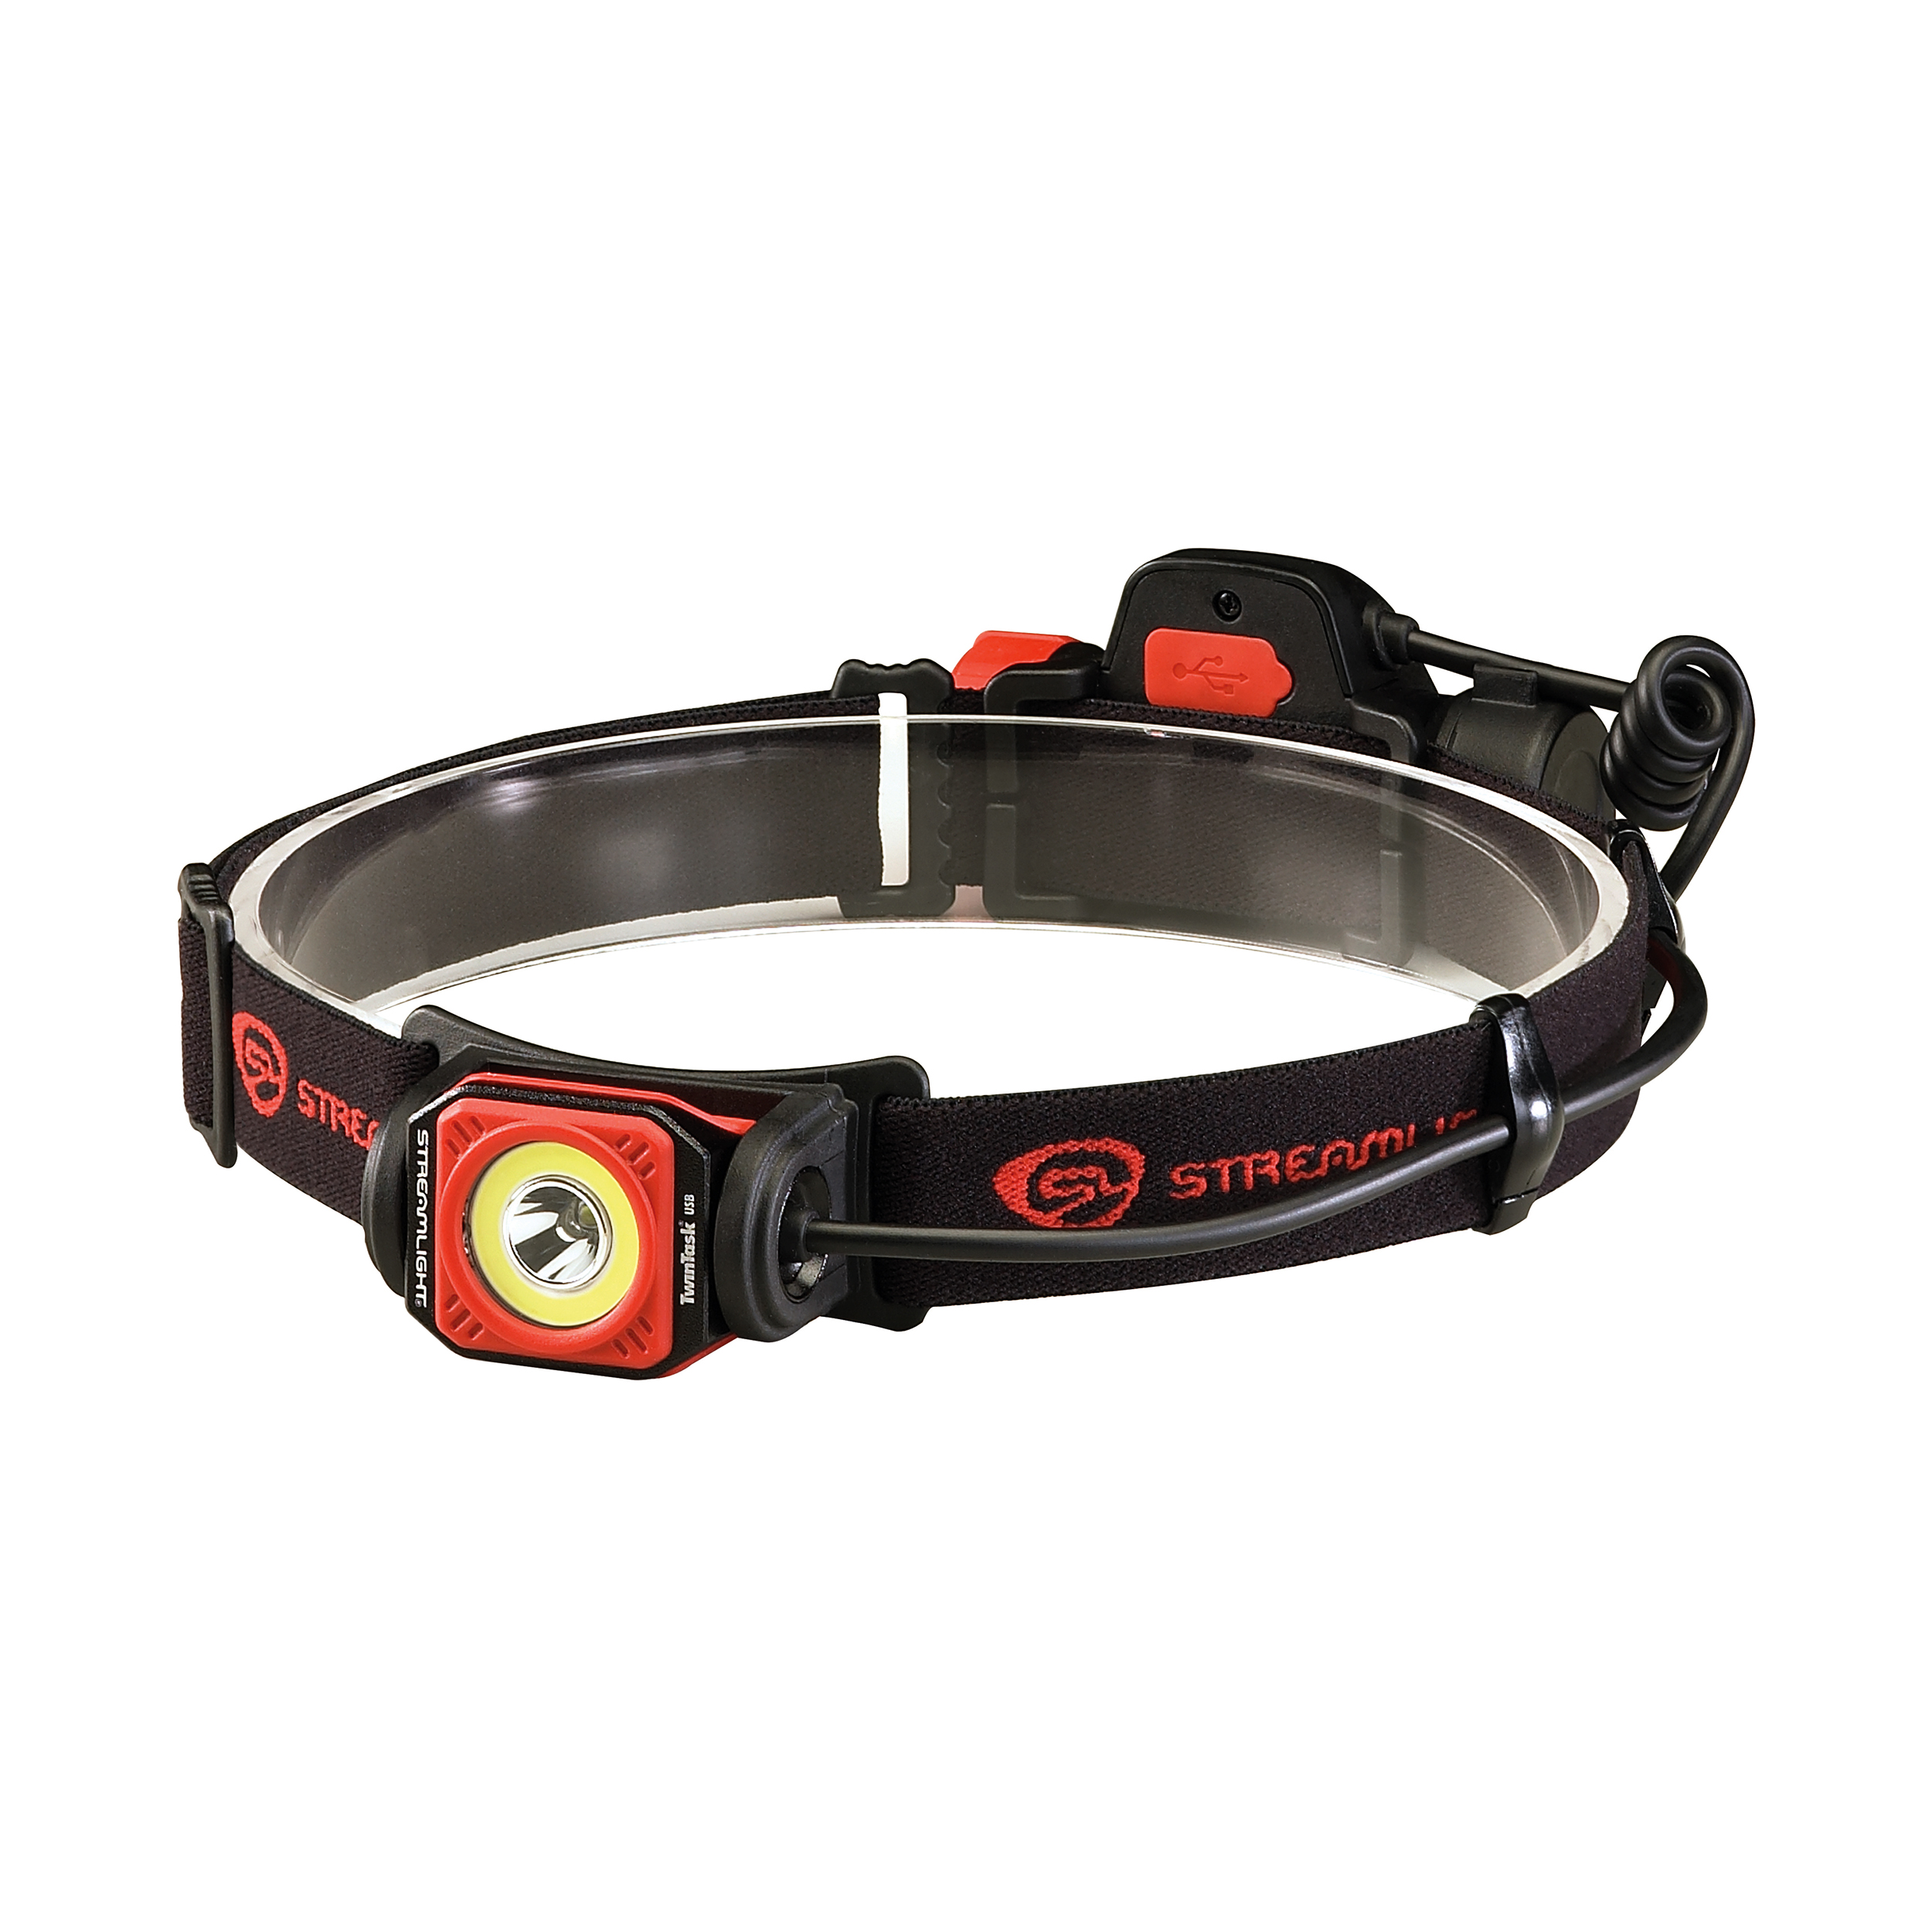 Streamlight Twin-Task USB Headlamp Black/Red, Clam Package